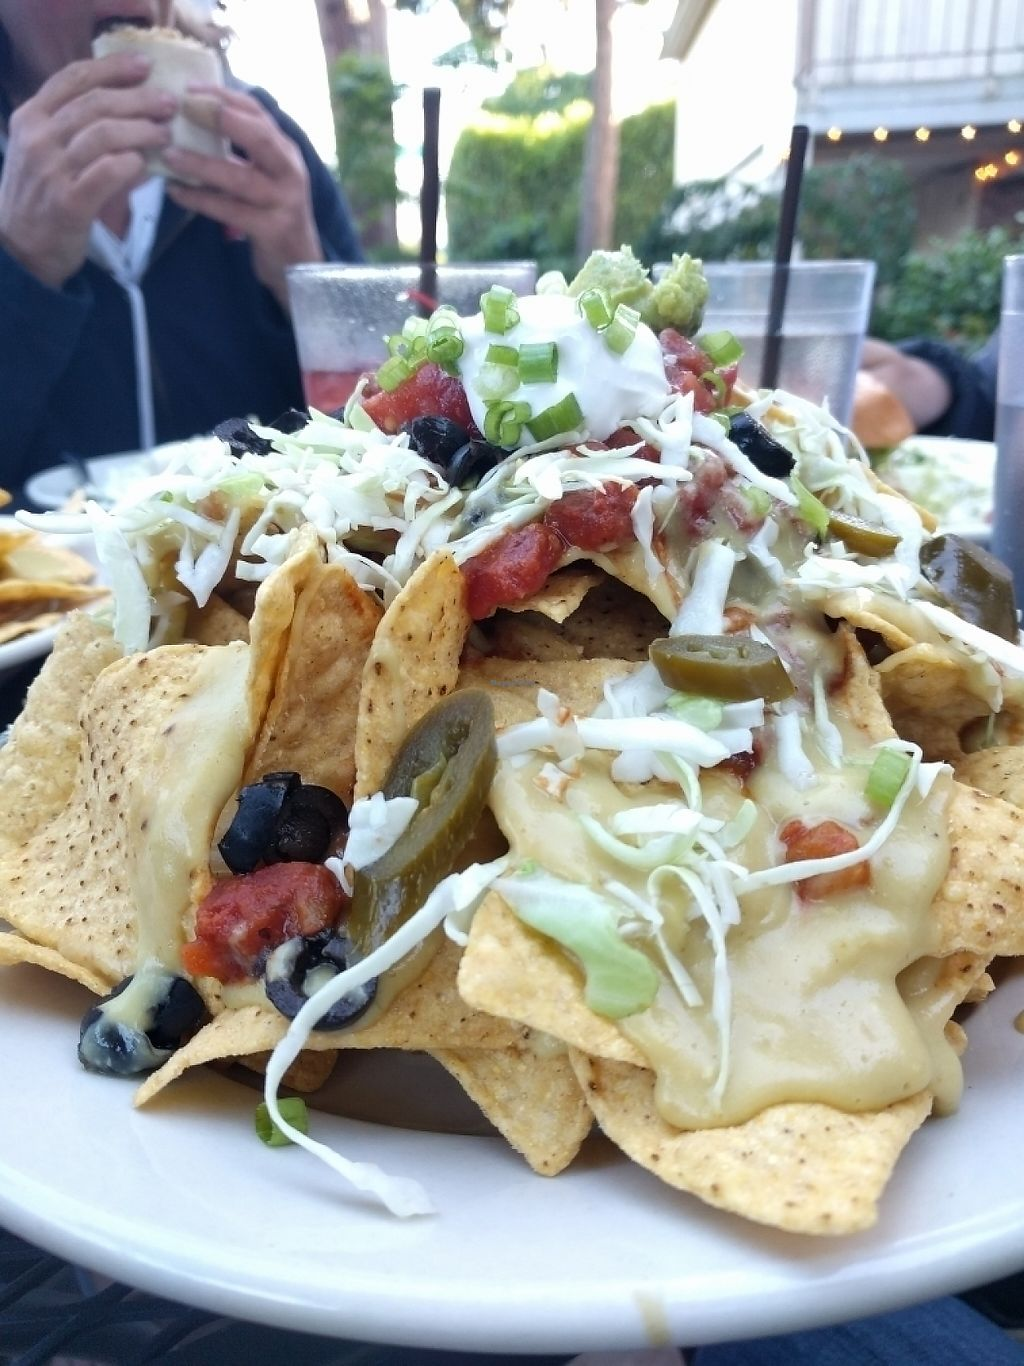 """Photo of The Space  by <a href=""""/members/profile/The%20Hungry%20Vegan"""">The Hungry Vegan</a> <br/>Loaded Nachos <br/> May 29, 2017  - <a href='/contact/abuse/image/80552/263708'>Report</a>"""